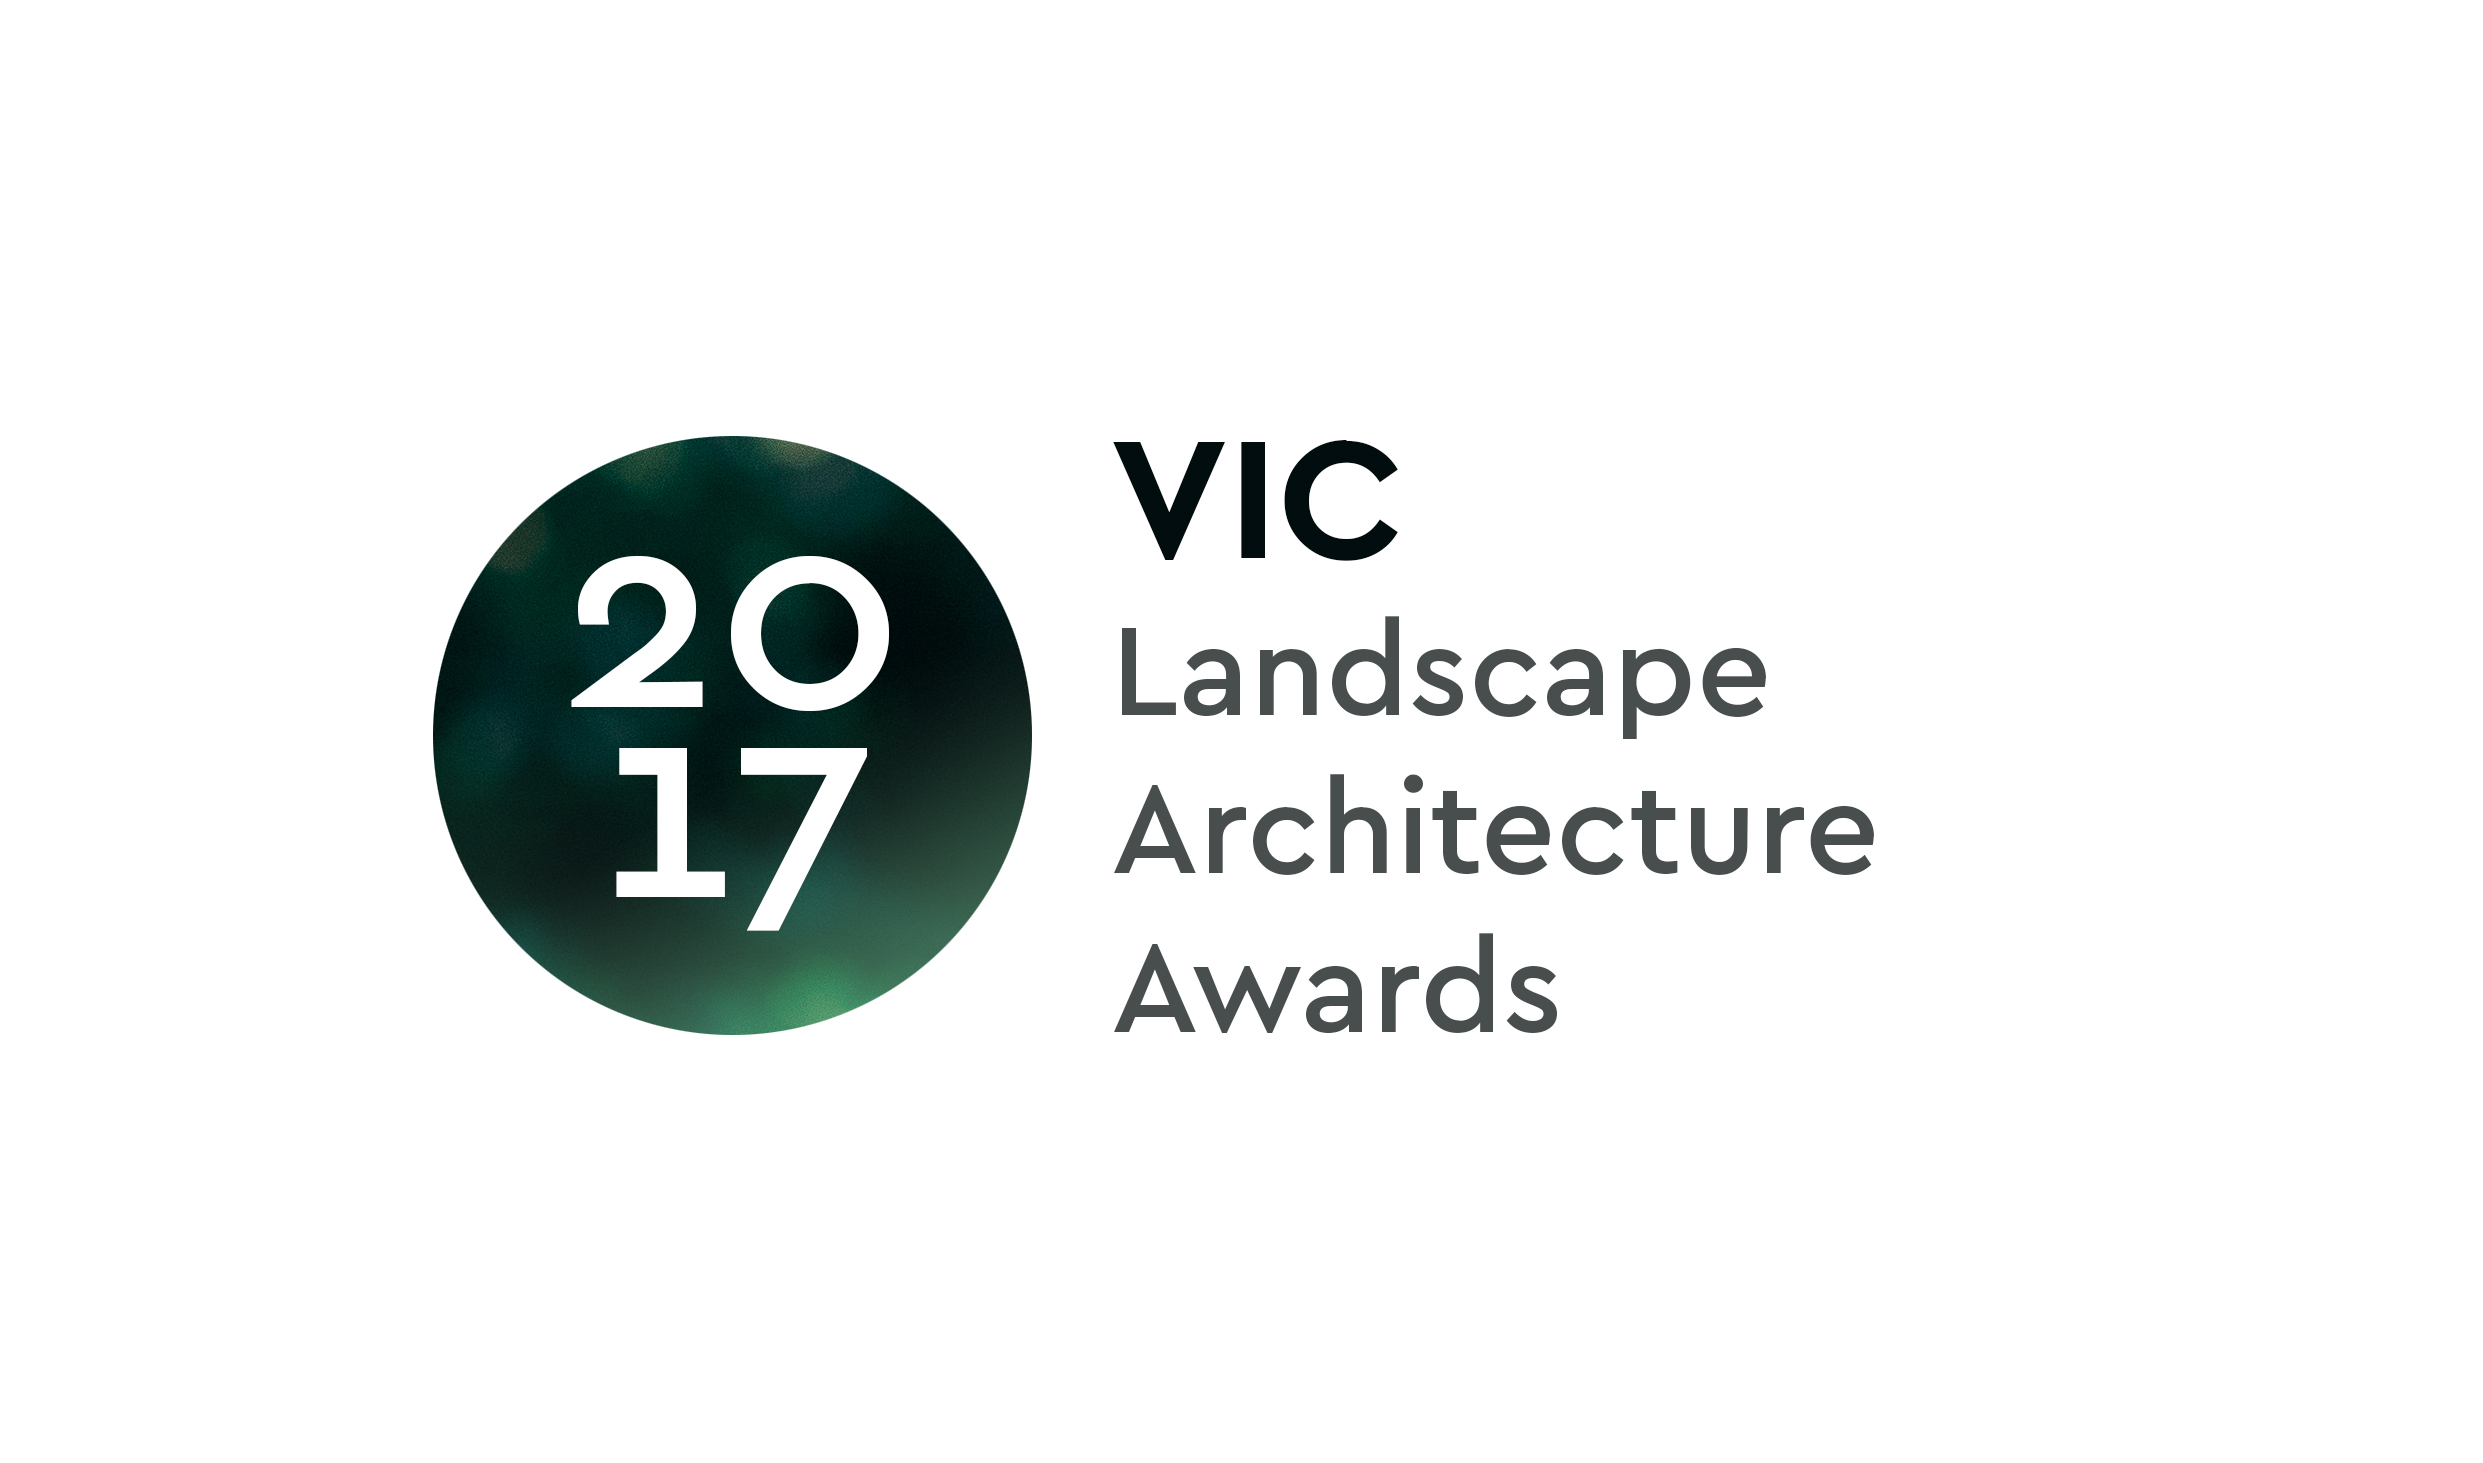 VIC 2017 Landscape Architecture Awards